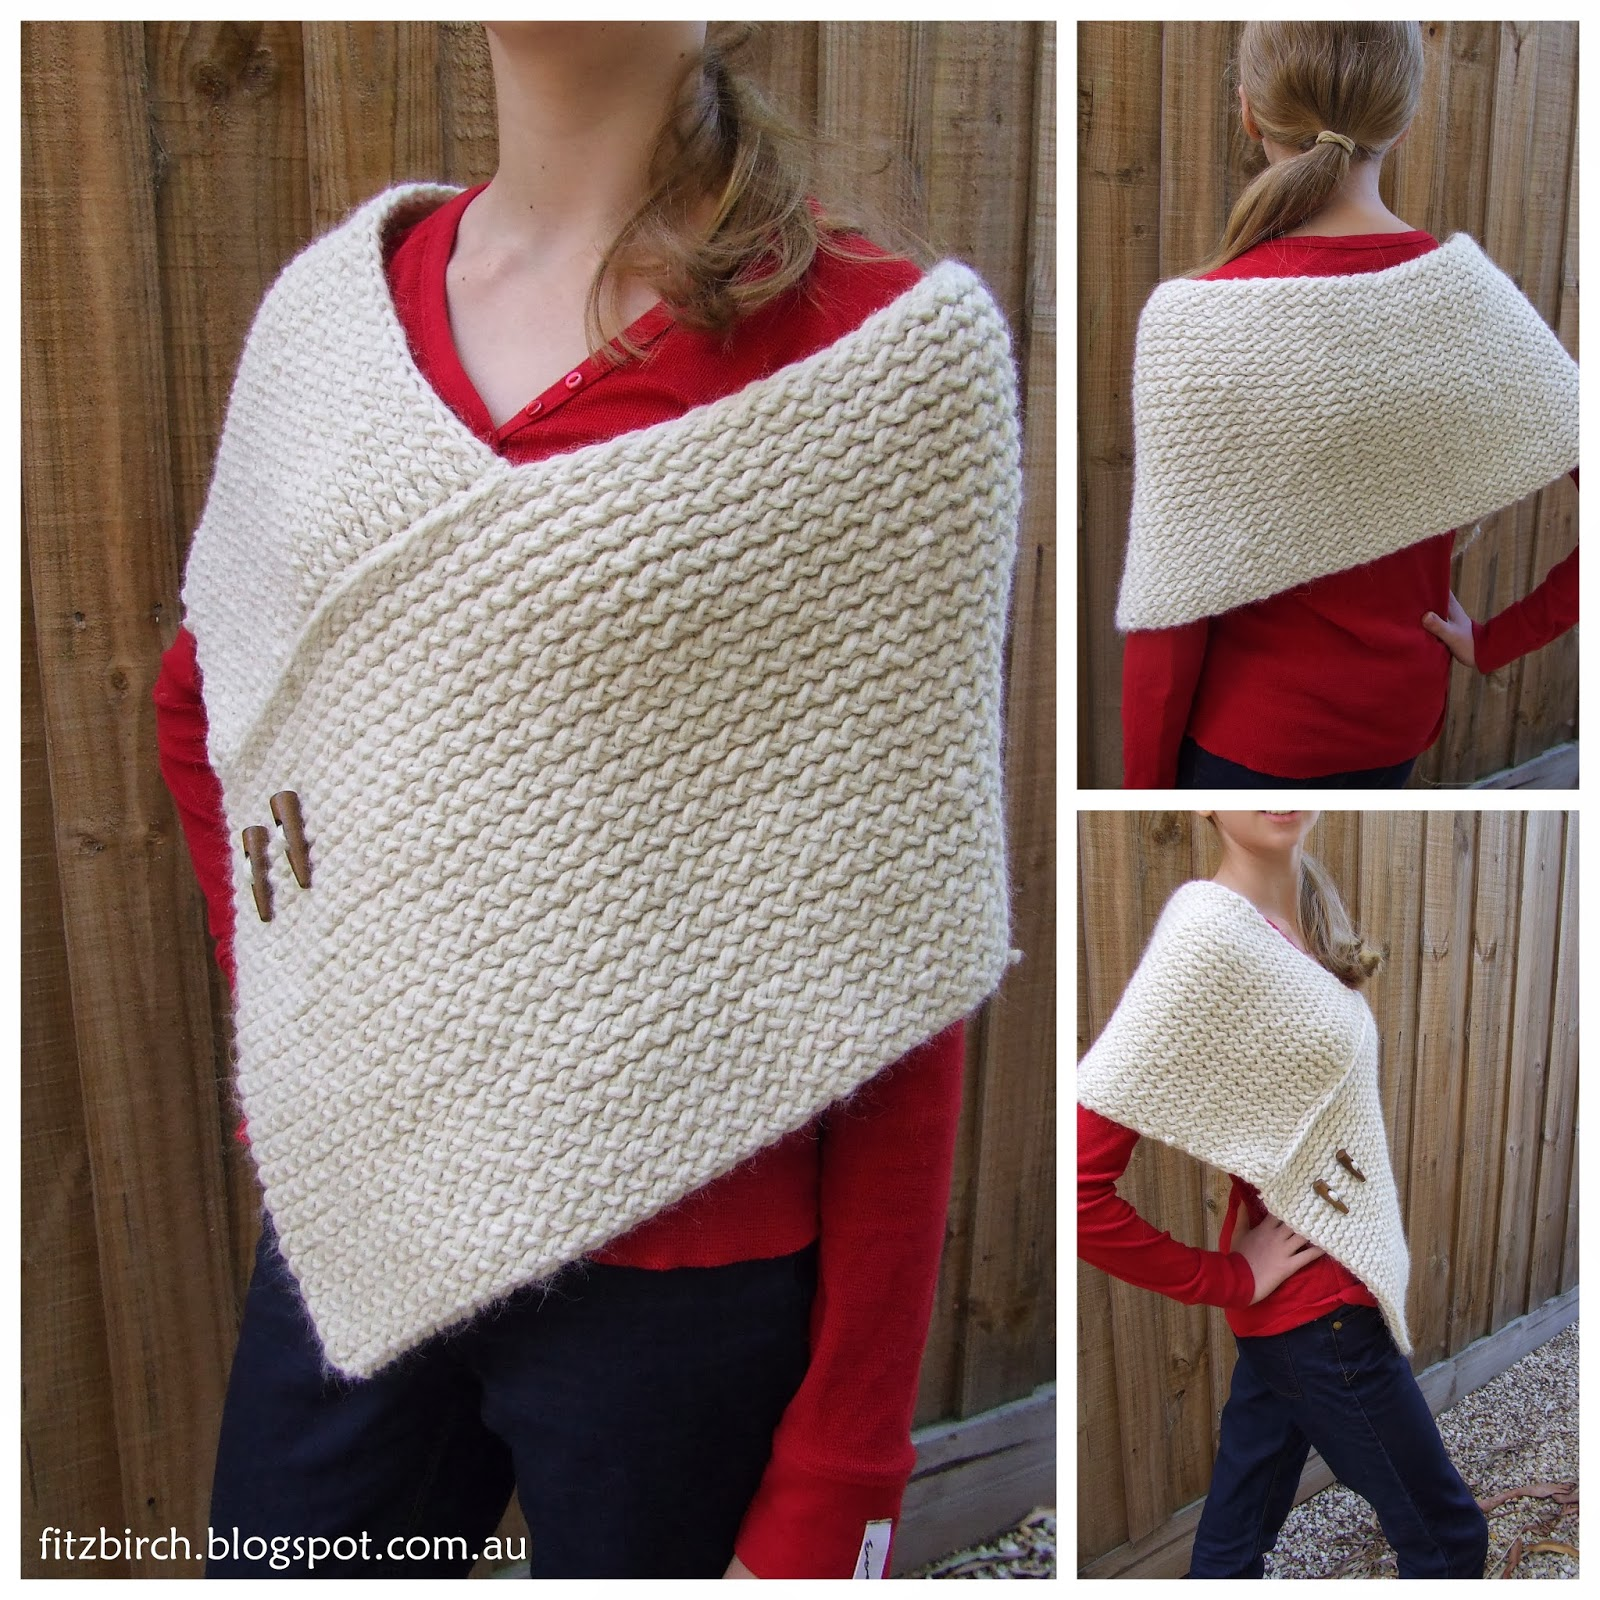 Knitting Patterns For Wraps Free : FitzBirch Crafts: Loom Knit Wrap